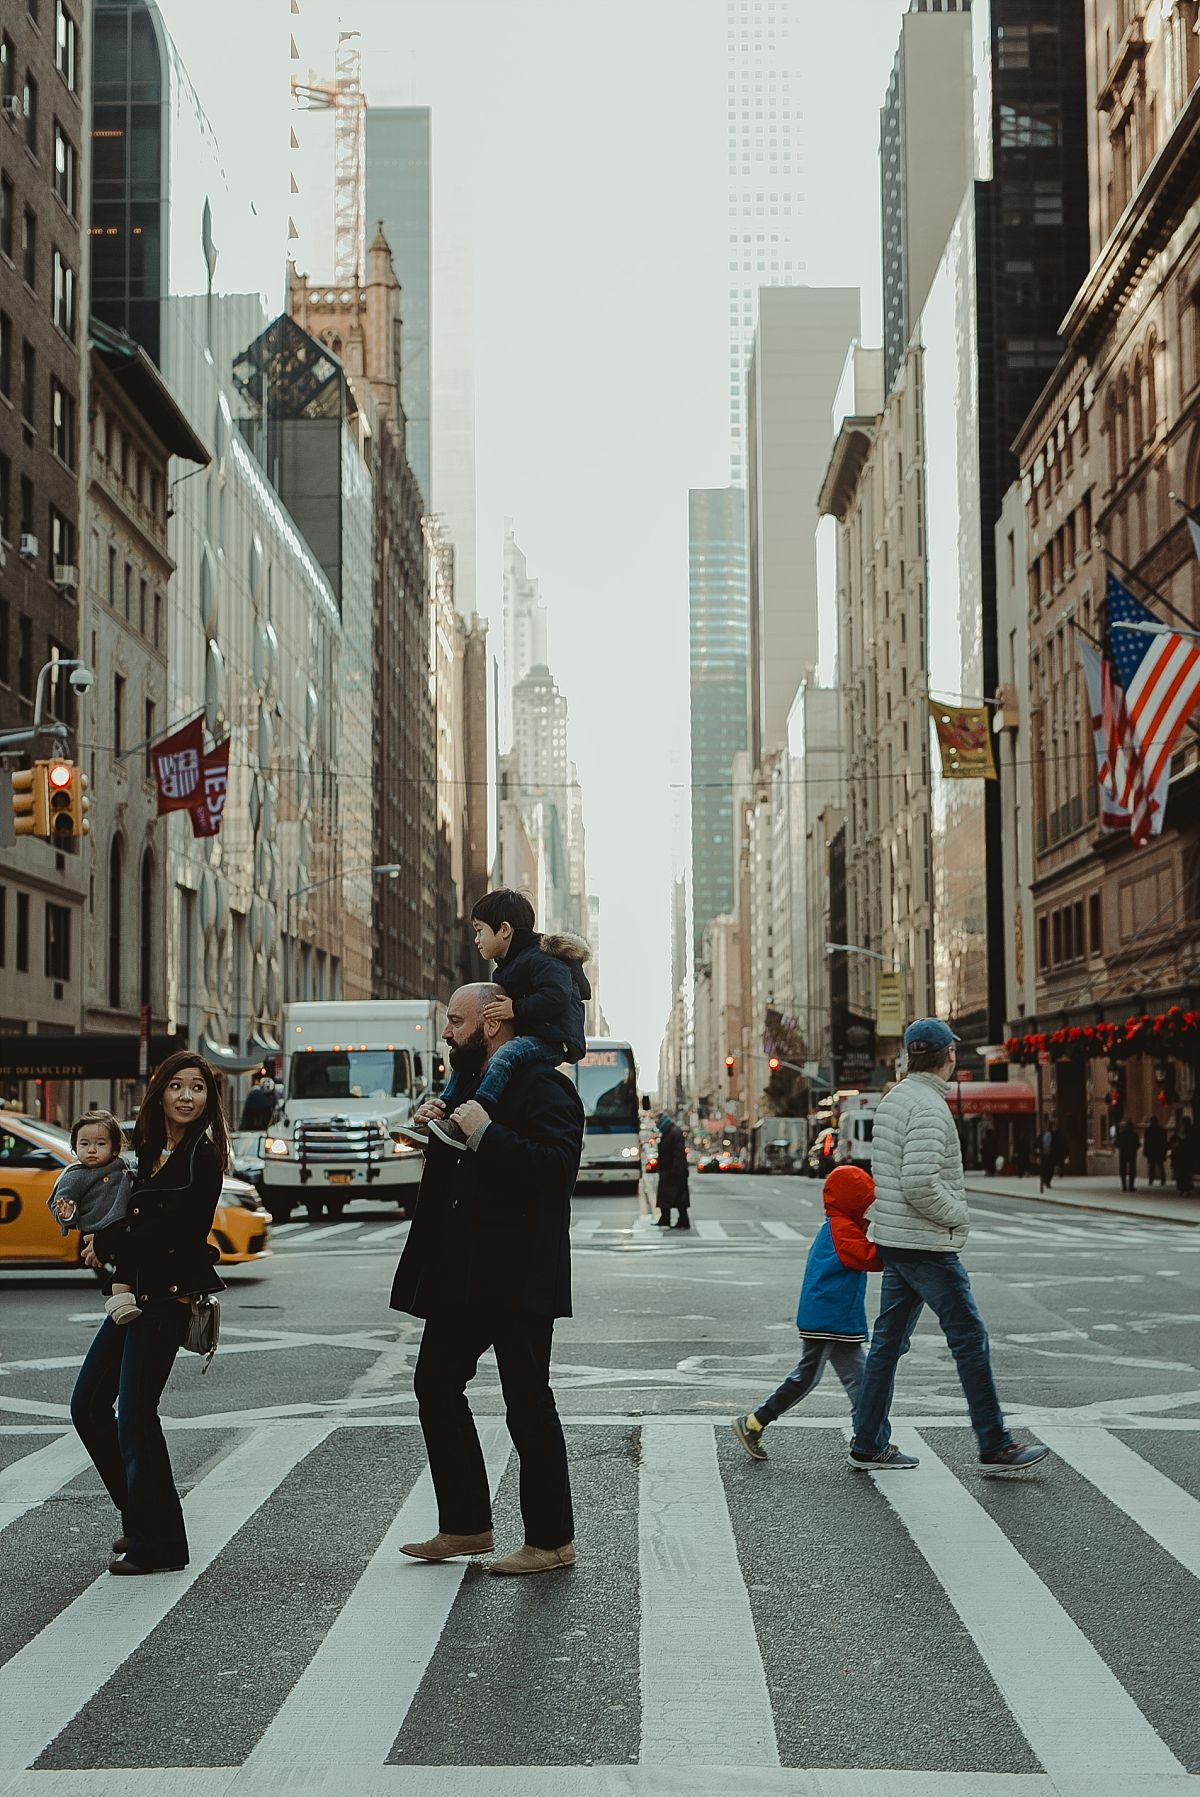 family of four walking across the streets of midtown with skyscraper buildings in the background. image taken by krystil mcdowall photography